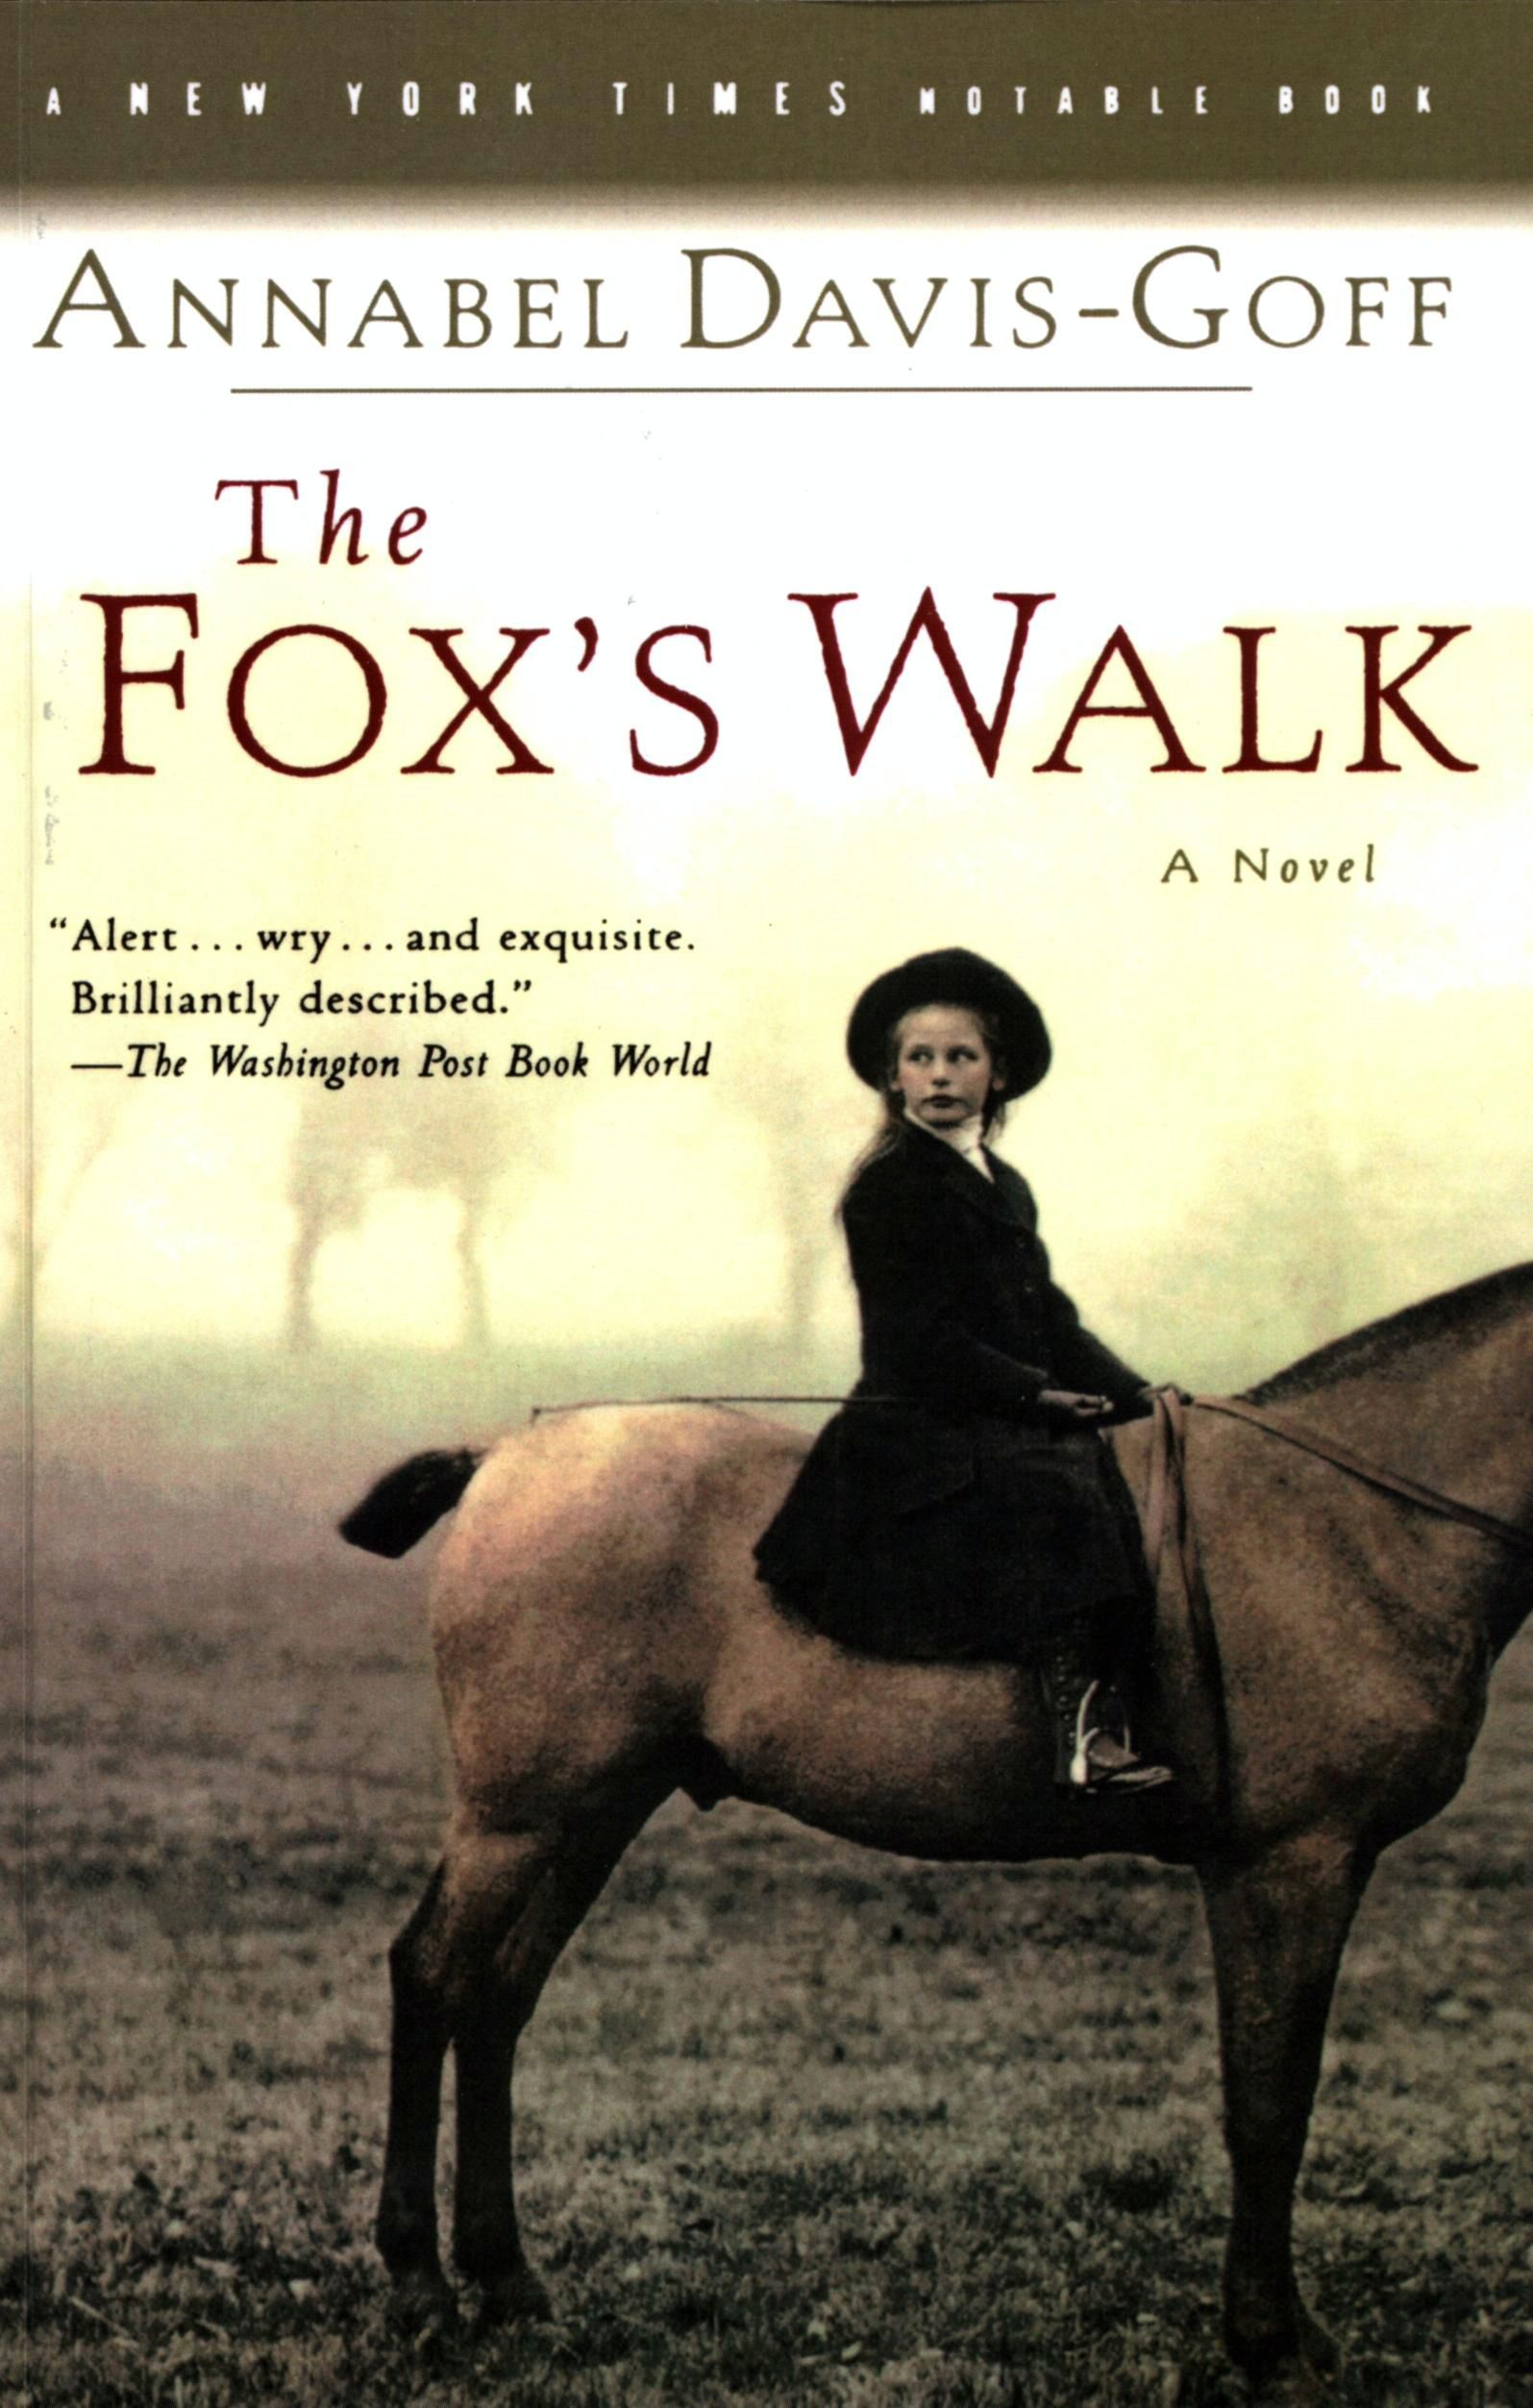 The Fox's Walk By: Annabel Davis-Goff